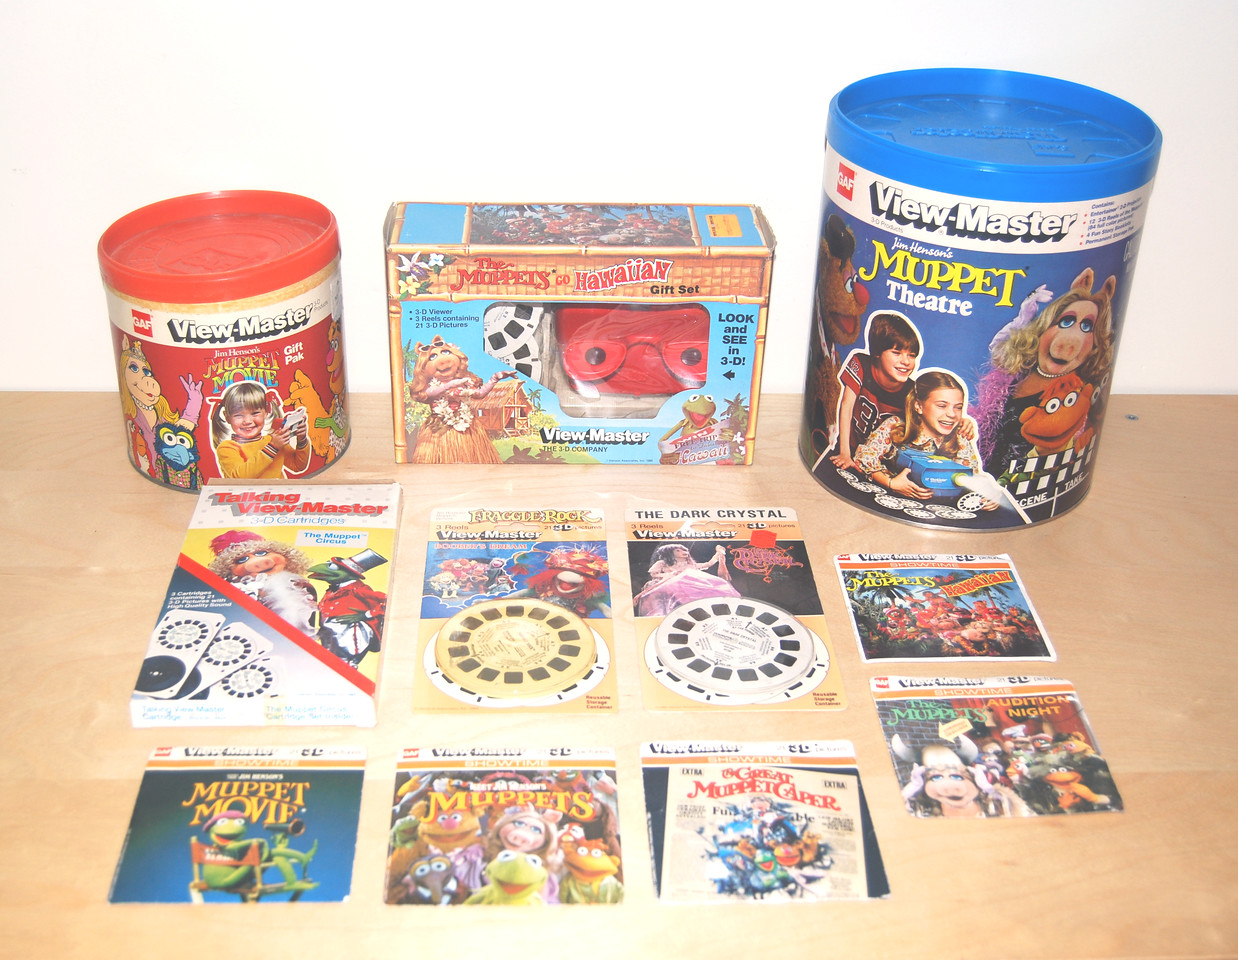 View-Master gift packs and reels